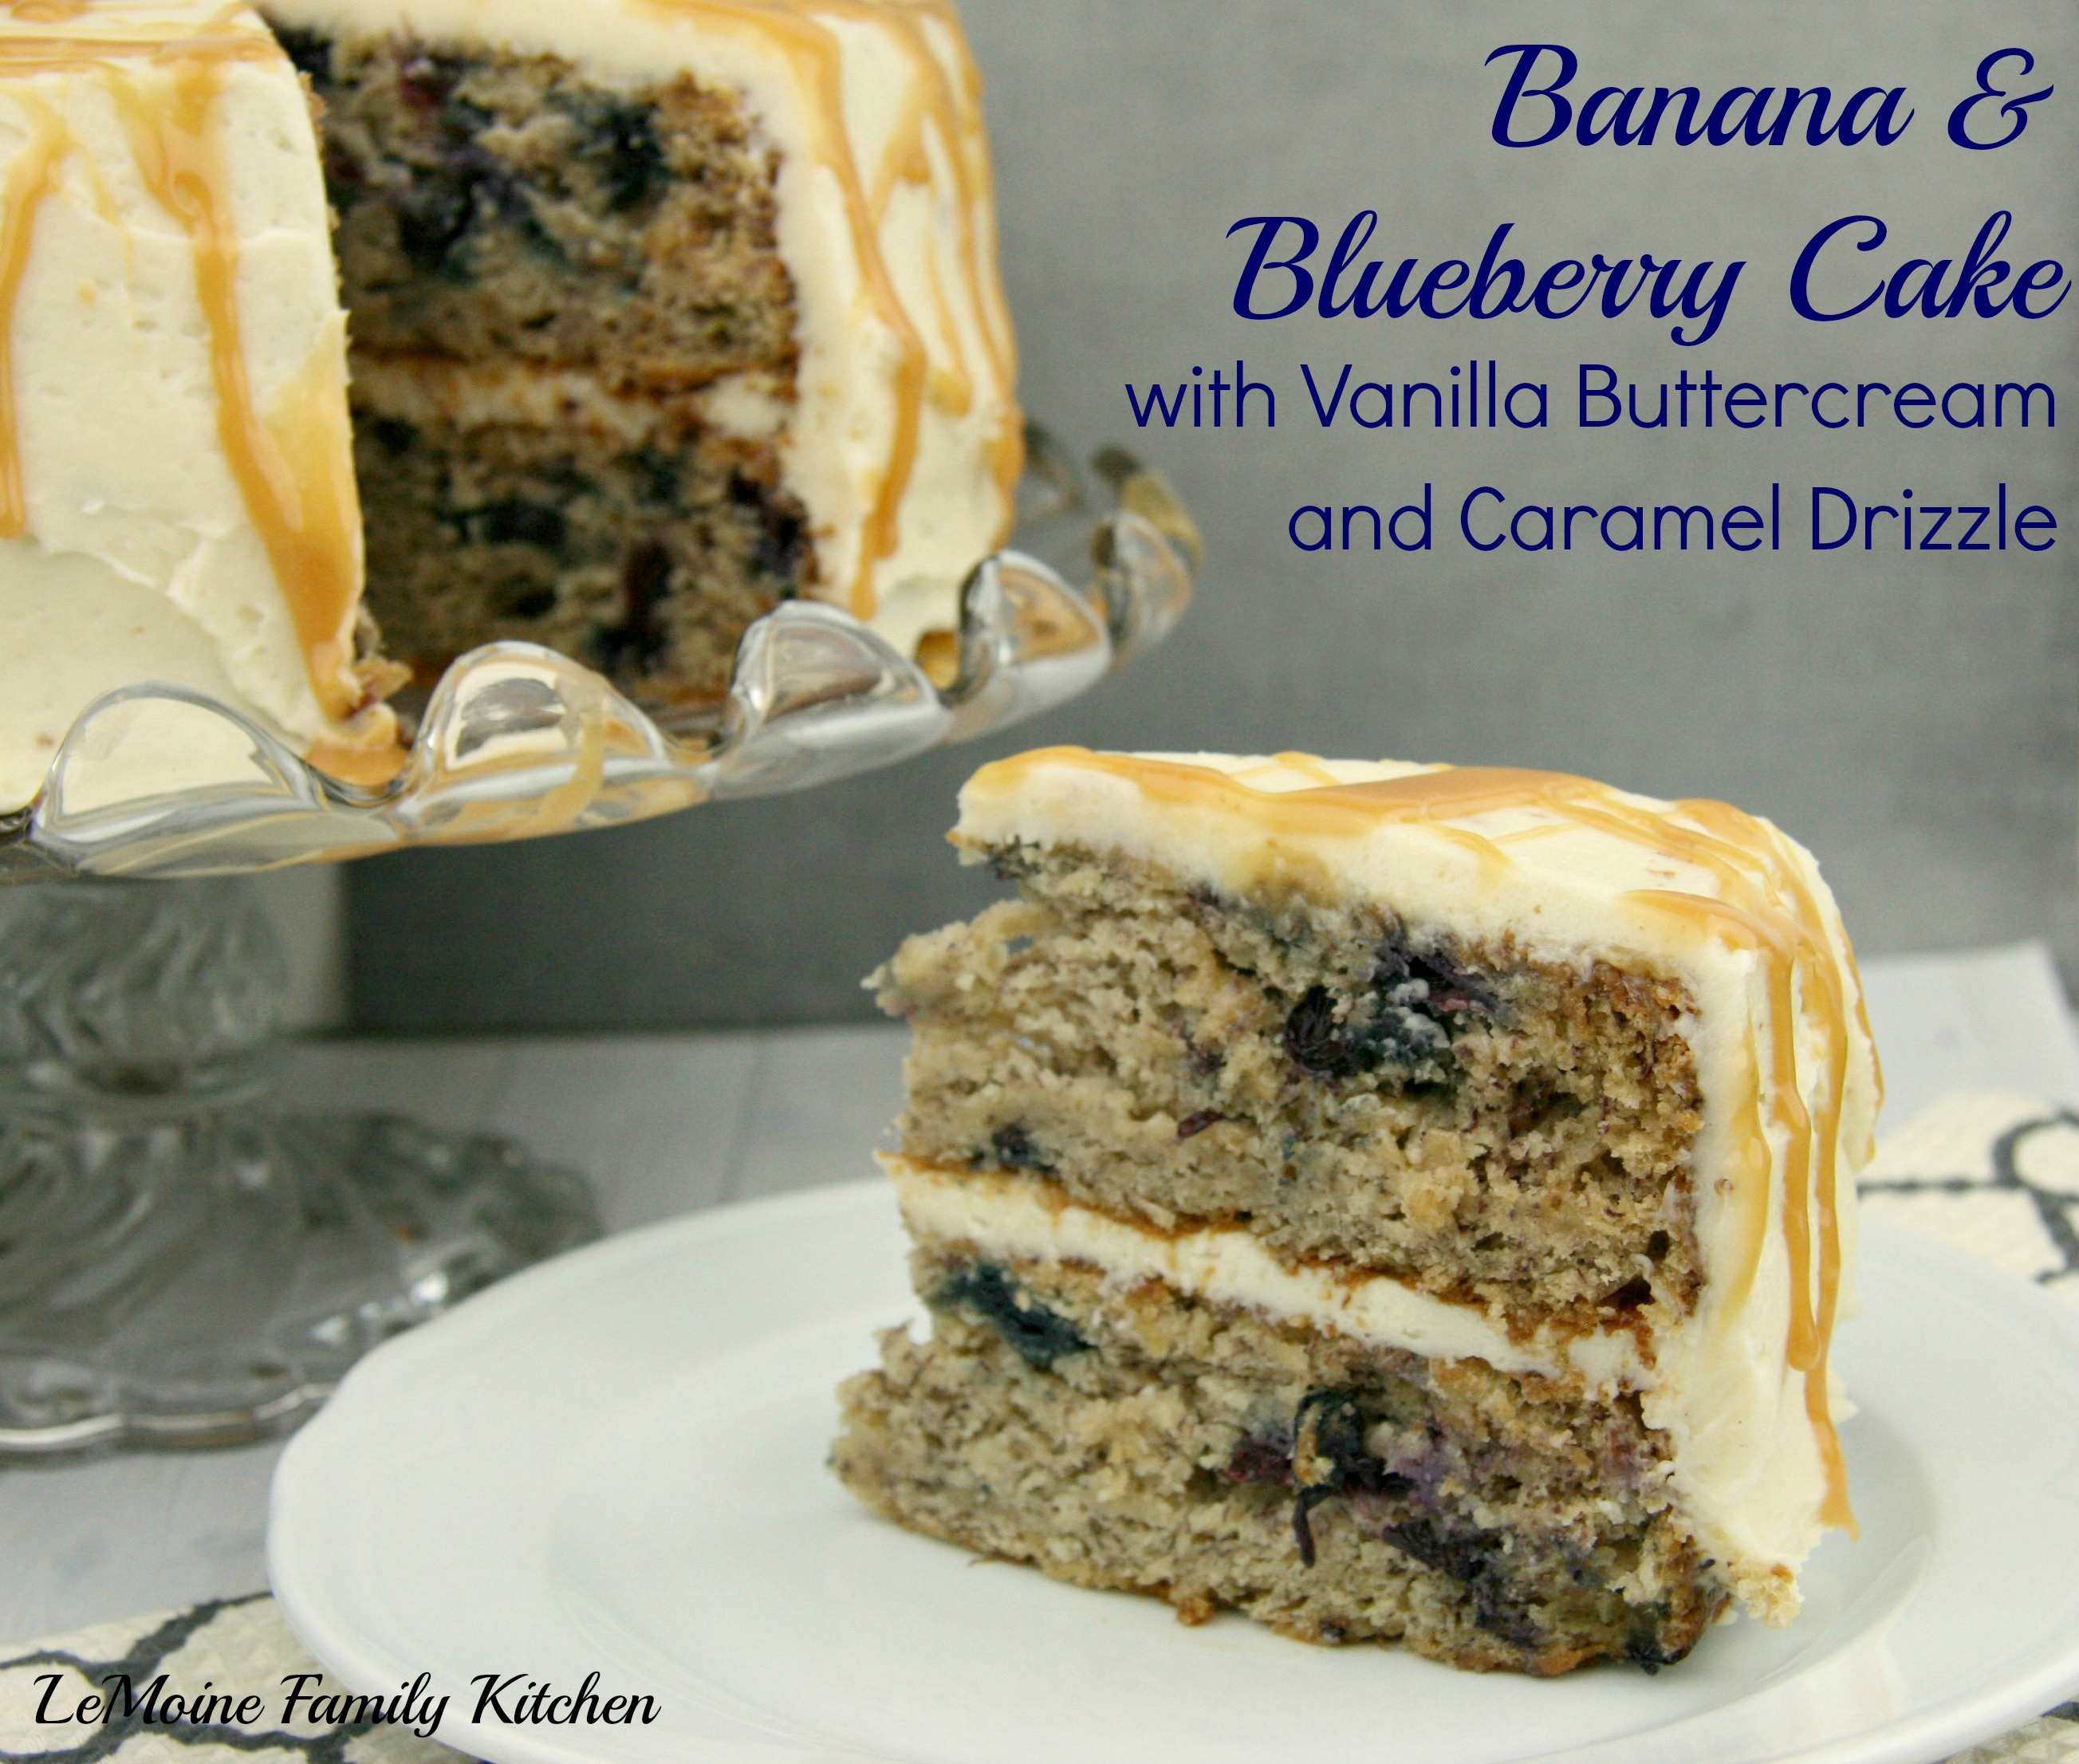 Banana Blueberry Cake with Vanilla Buttercream and Caramel Drizzle | LeMoine Family Kitchen #cake #banana #blueberry #dessert #brunch #breakfast #recipe #buttercreamrecipe